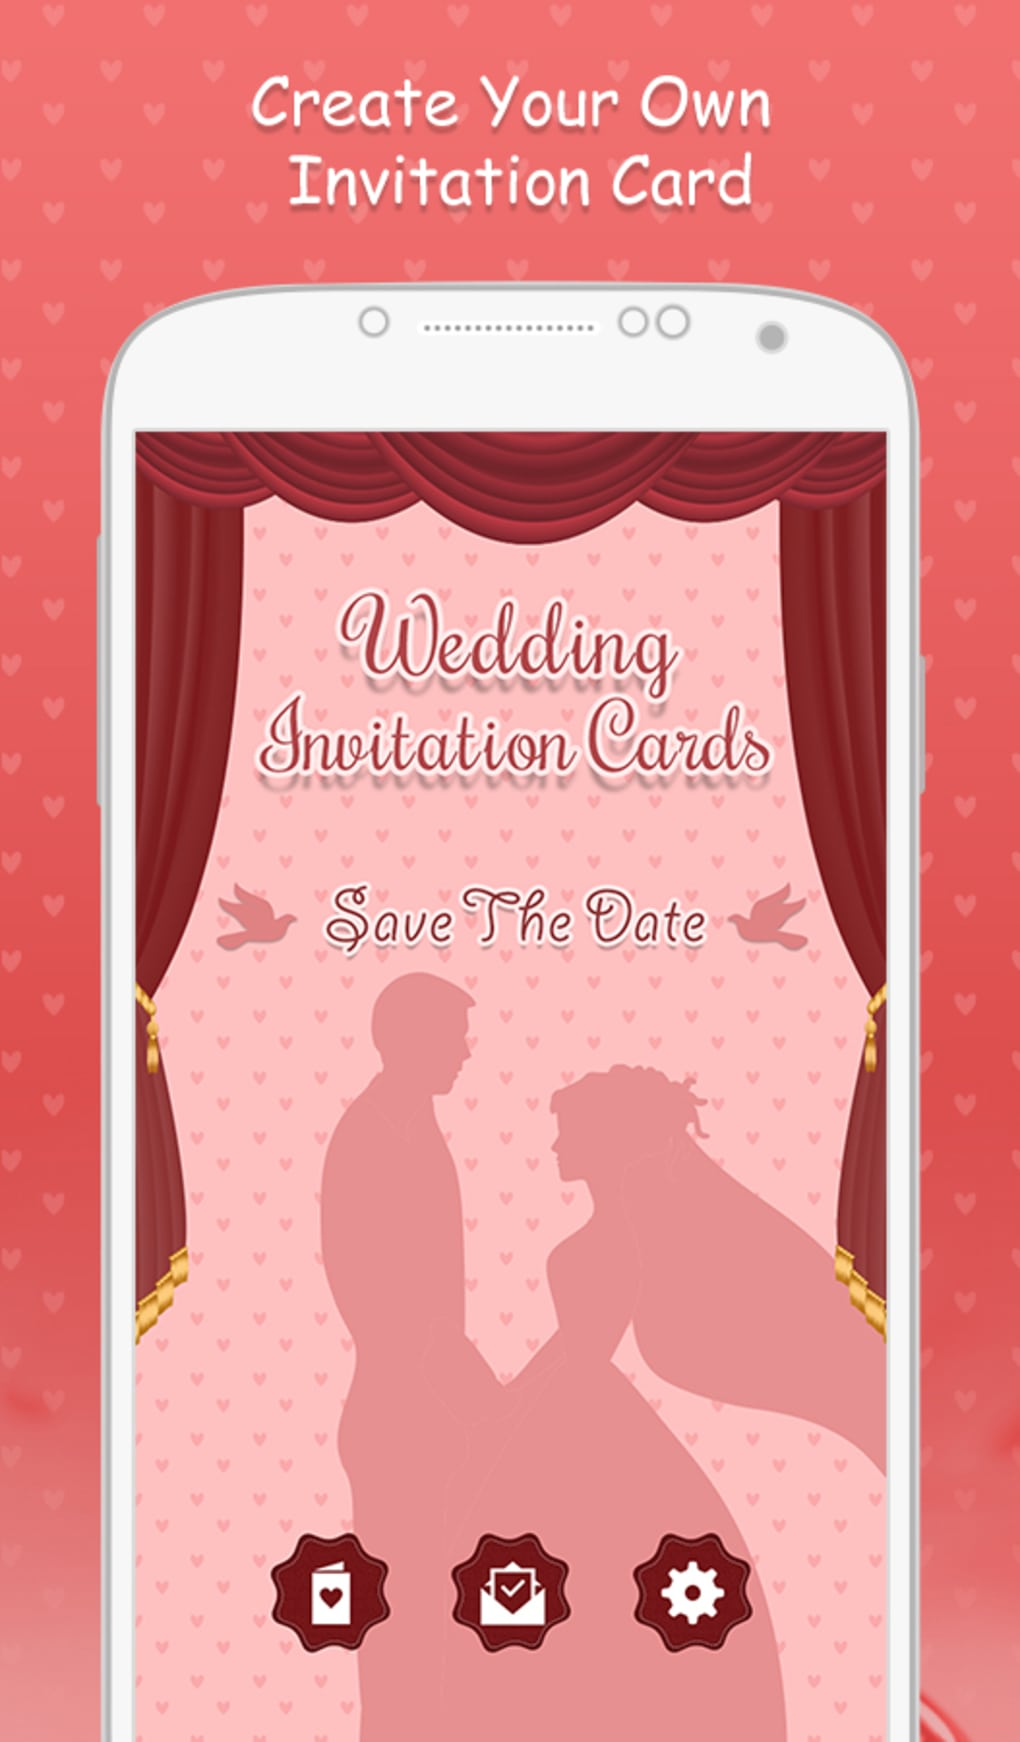 Download Wedding Invitation Cards For PC Dekstop - classroom app for pc